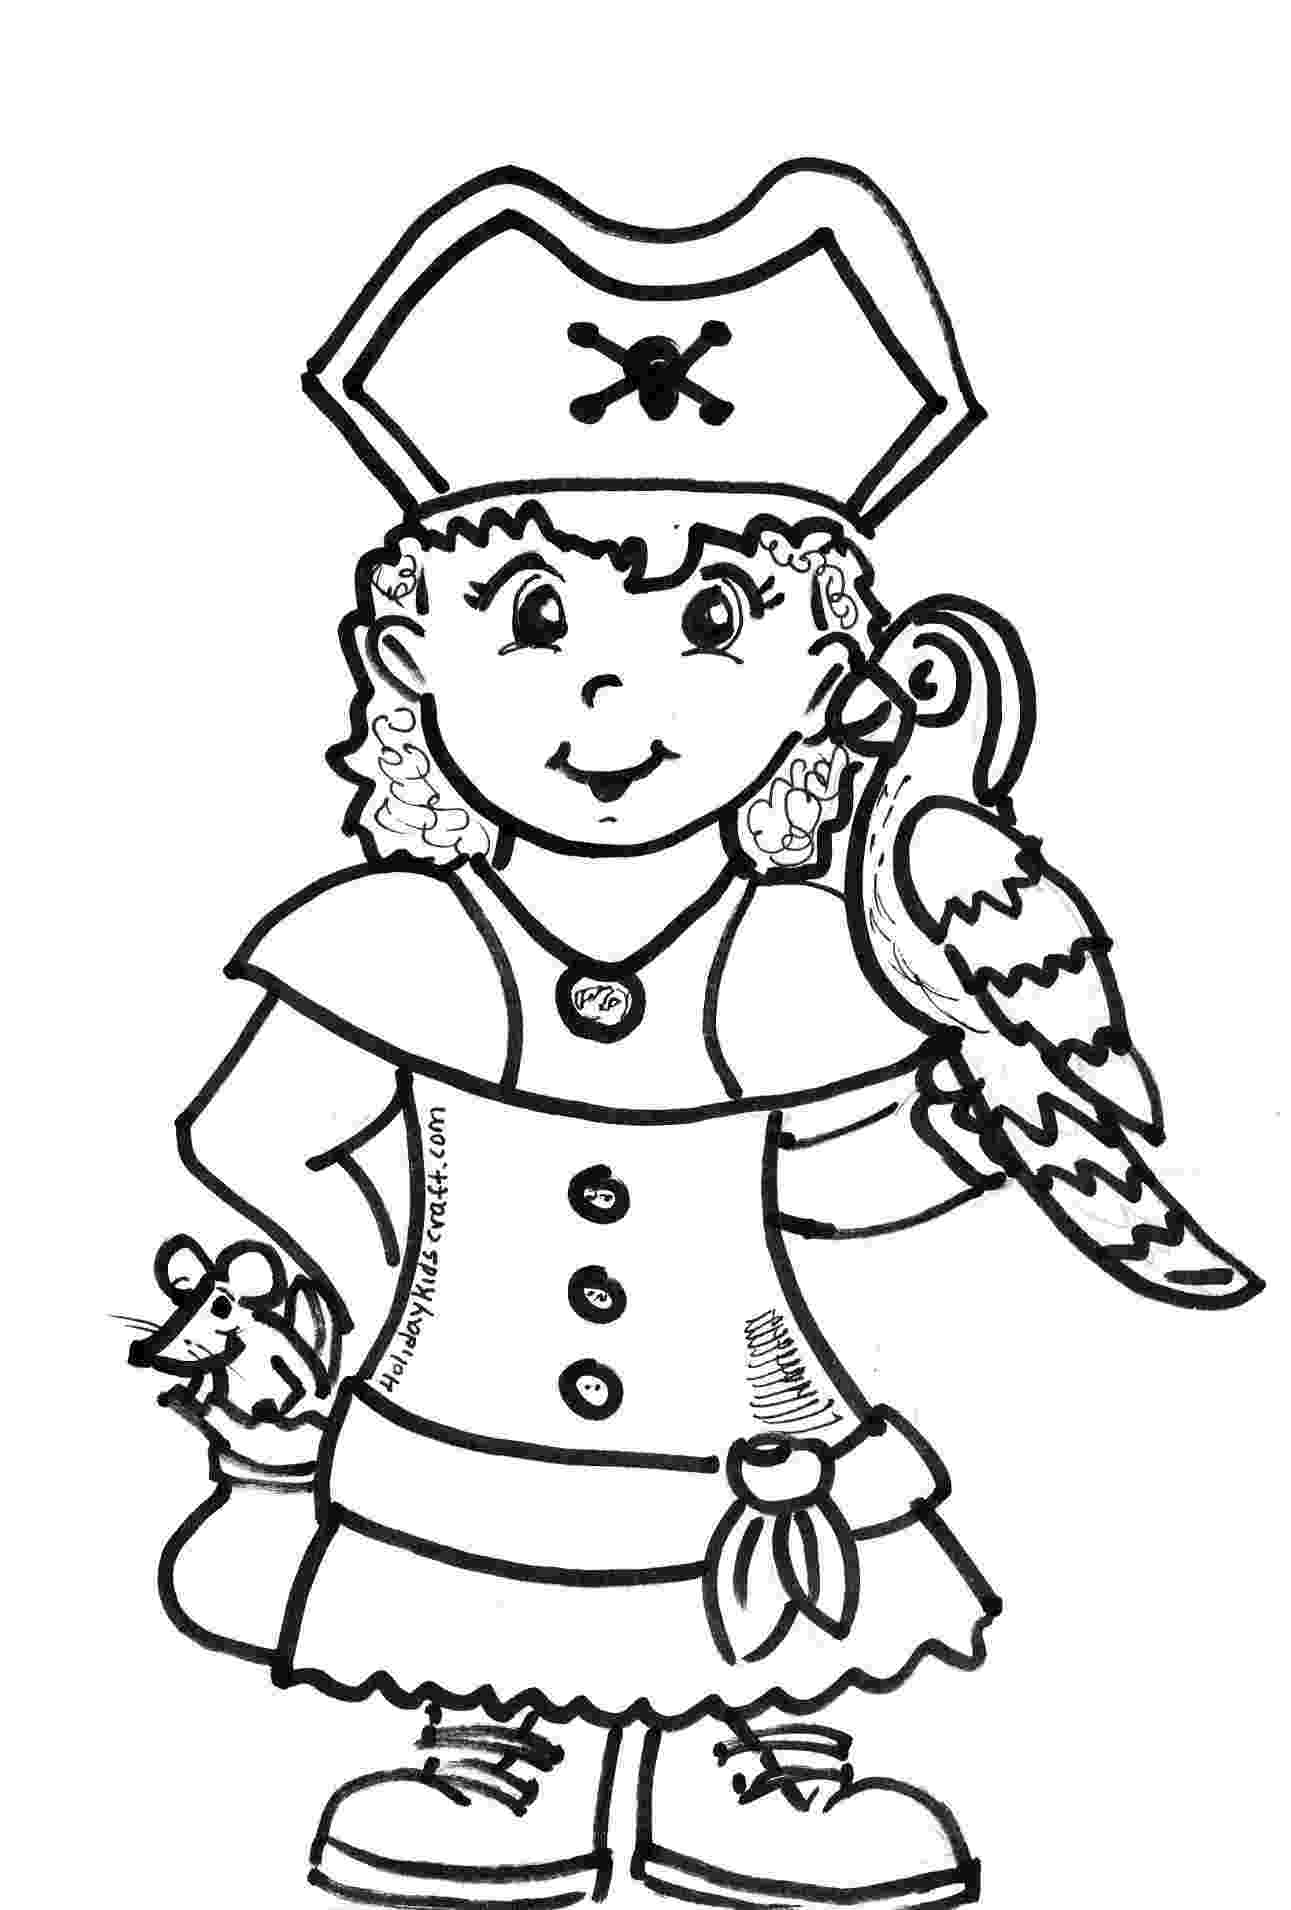 pictures of pirates to print free printable pirate coloring pages for kids pictures of to print pirates